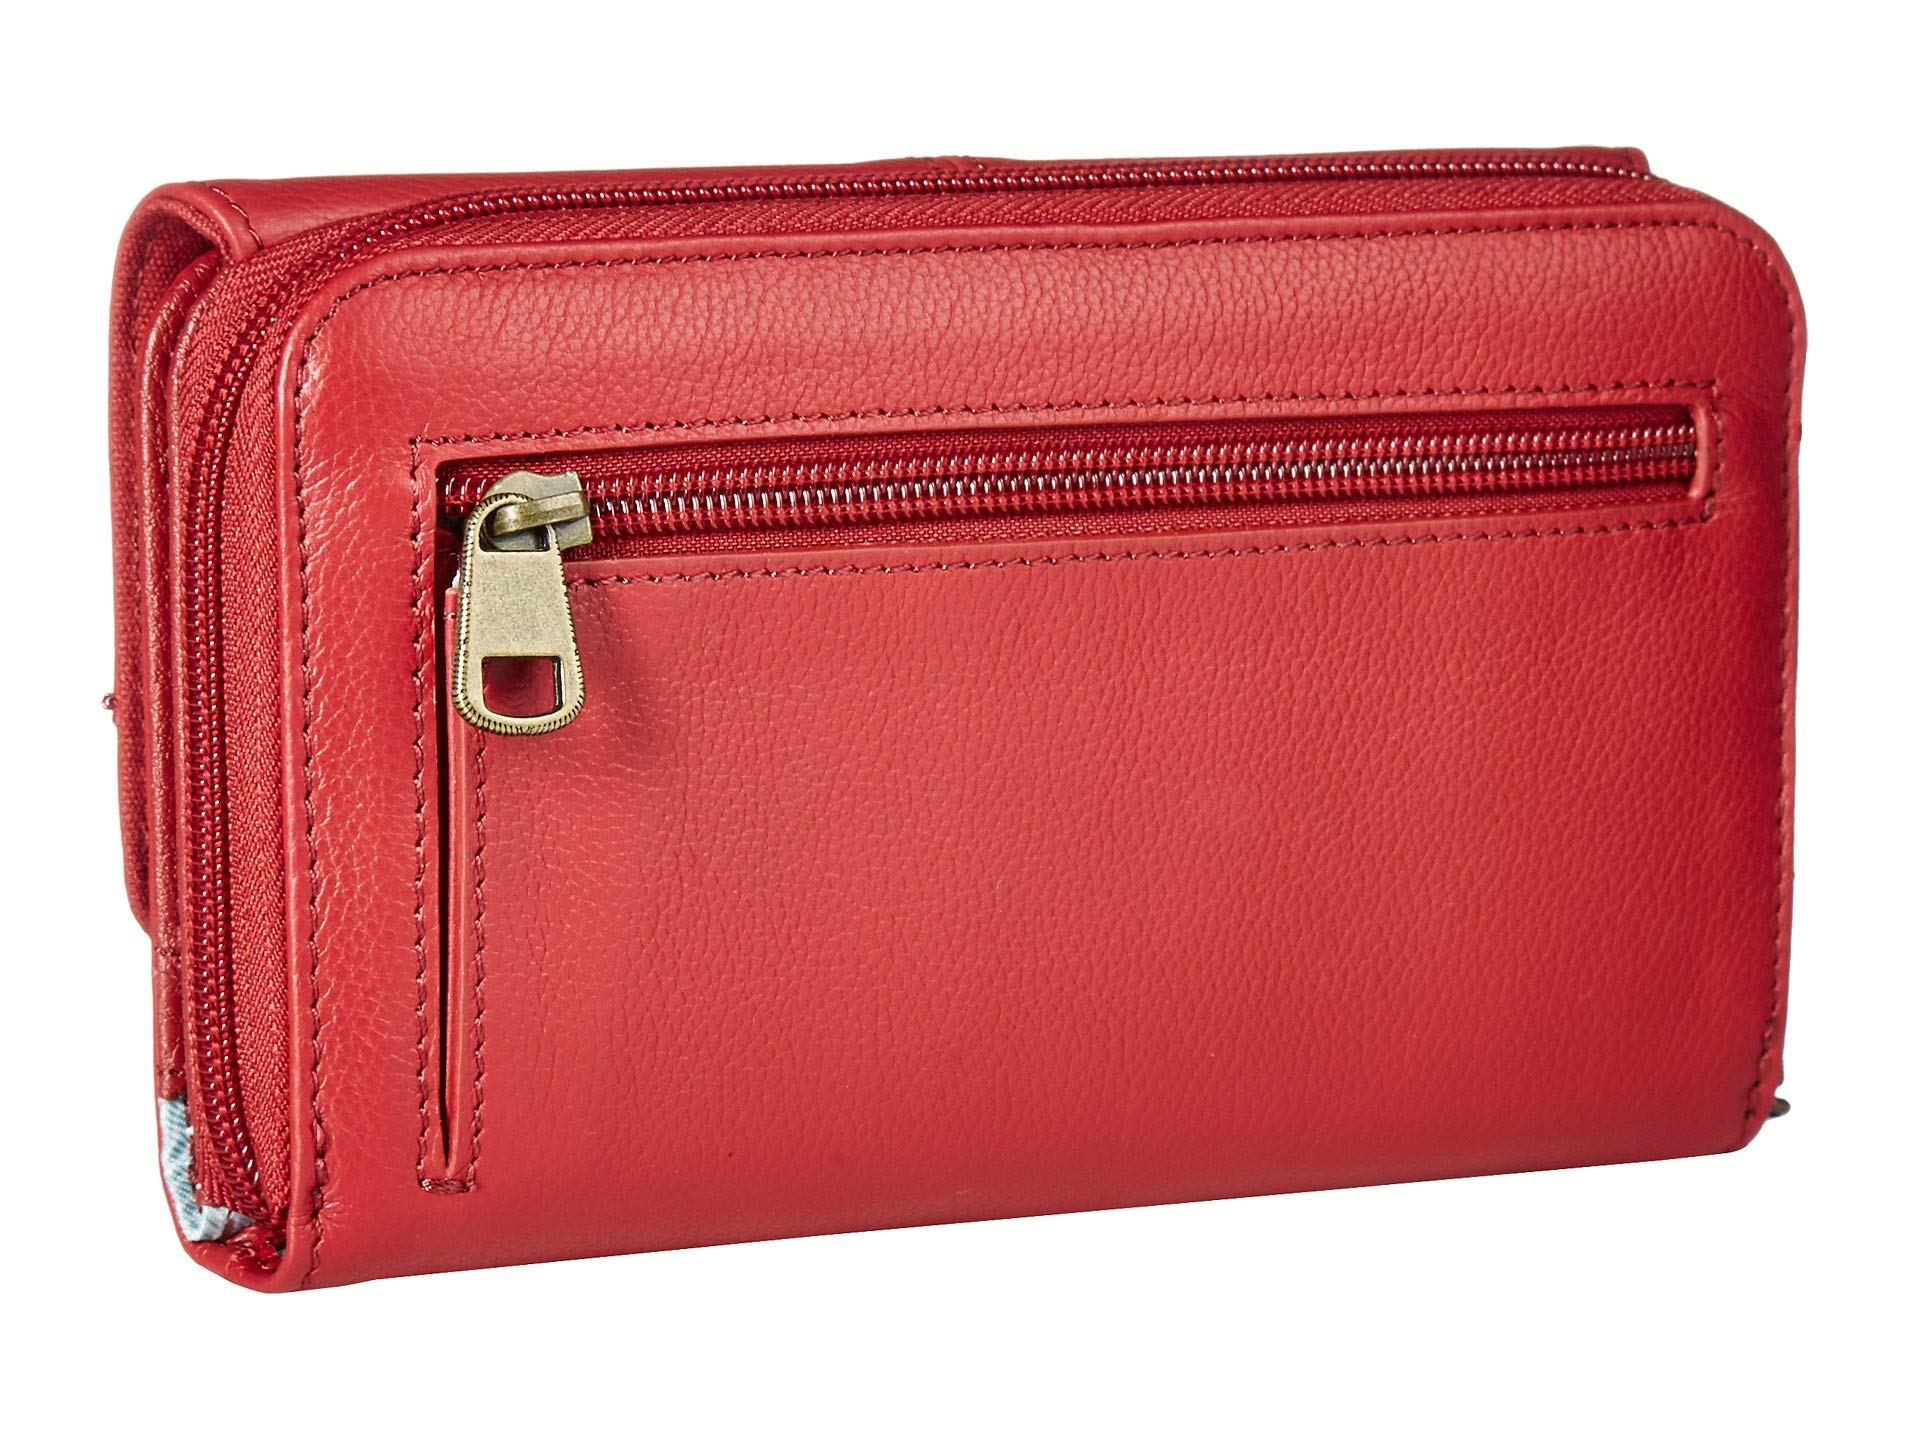 Scarlet Sak Wallet Extra The Sequoia Large qxPw68HHfX